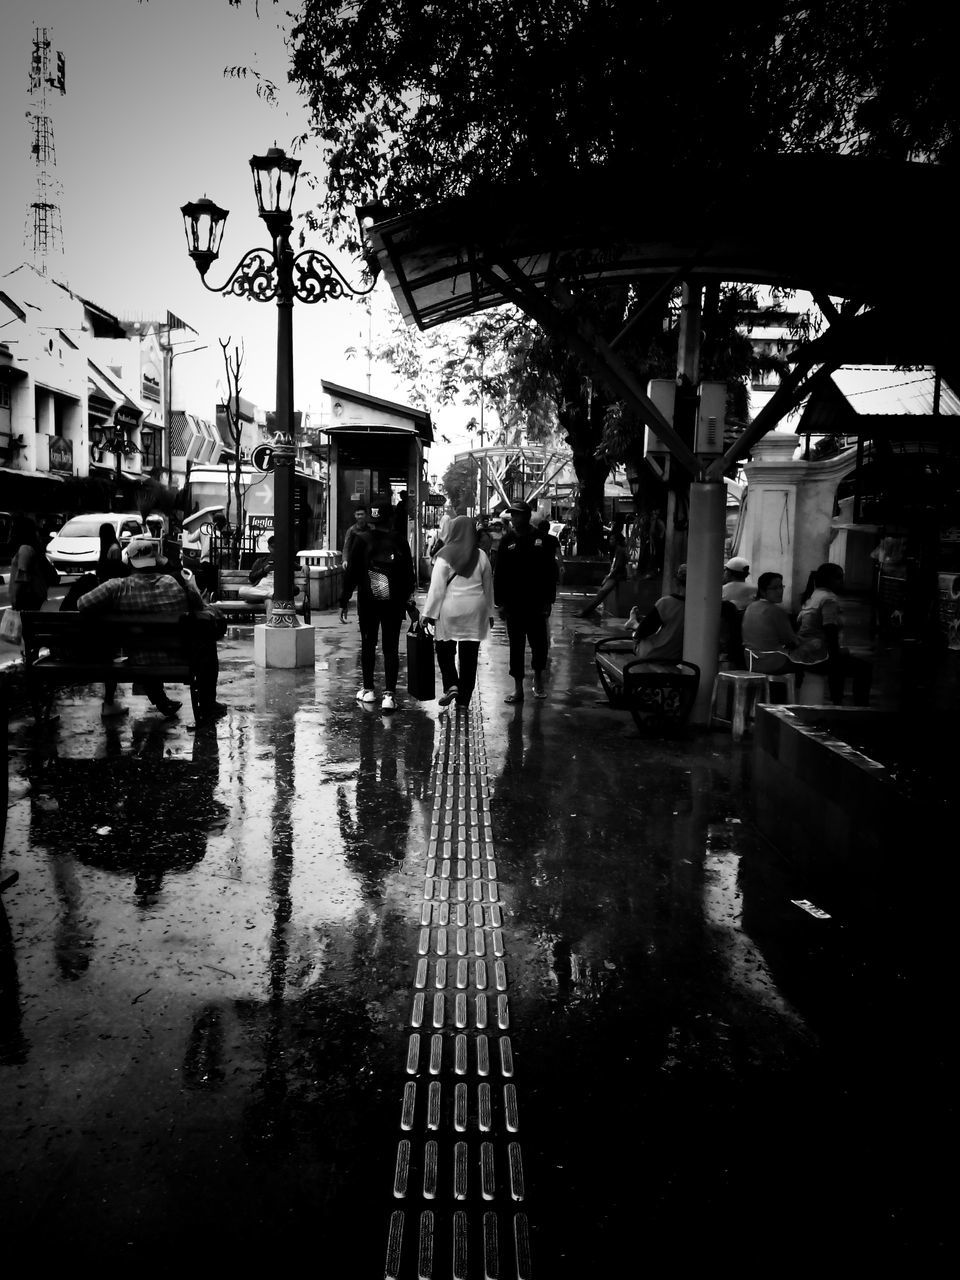 wet, street, real people, water, building exterior, rainy season, architecture, built structure, outdoors, city life, walking, city, transportation, day, lifestyles, road, men, women, one person, people